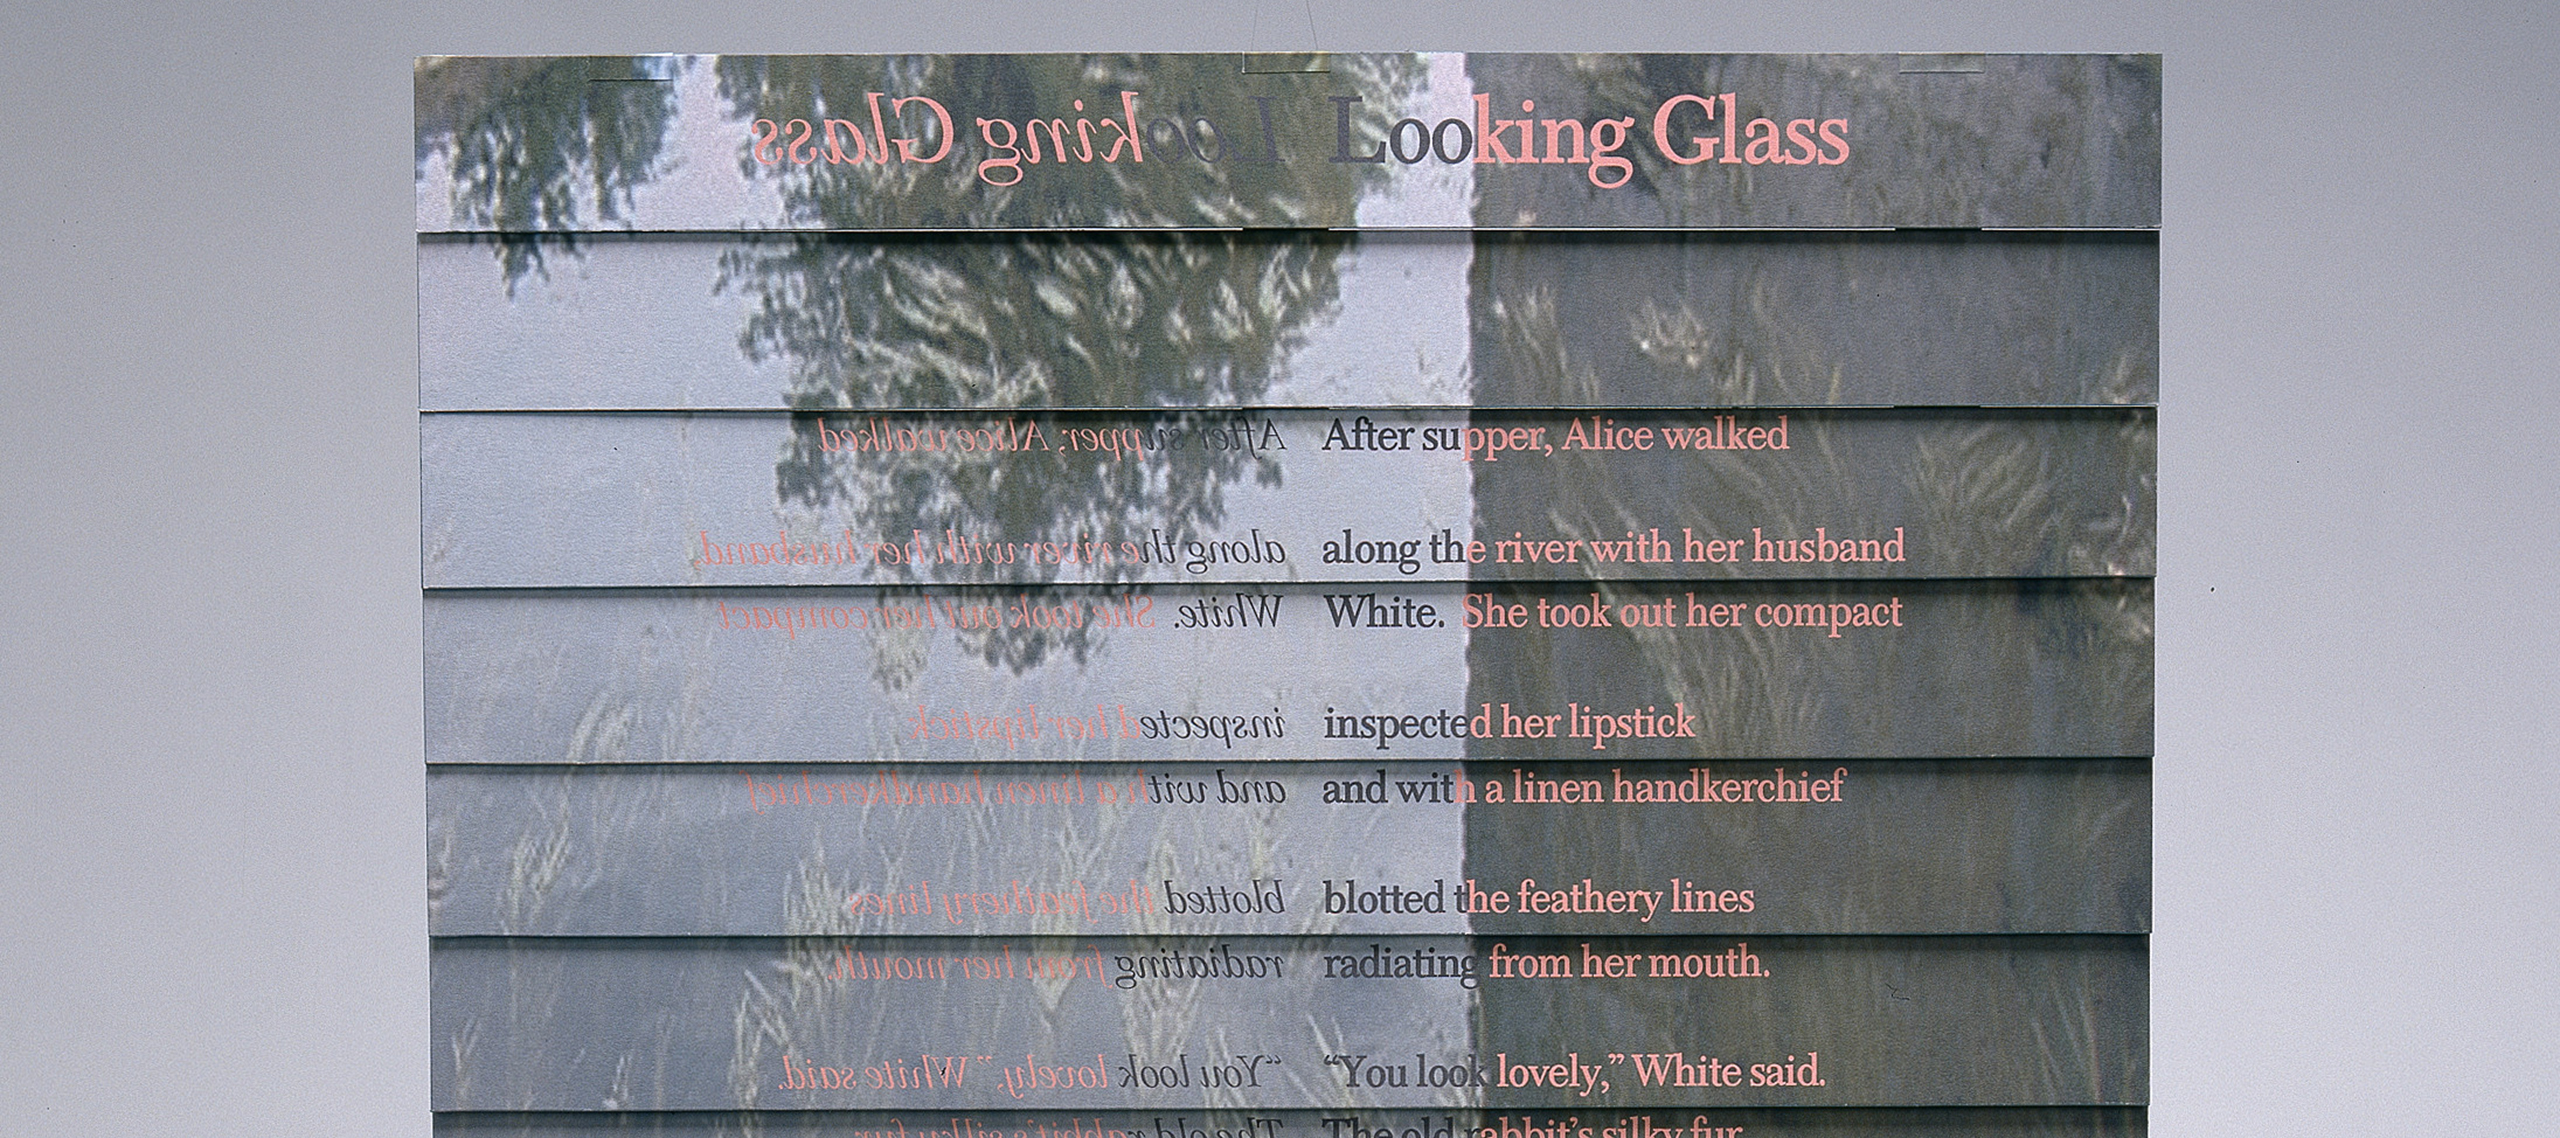 Carol Todaro, <i>Looking Glass</i>, 1999; Archival Inkjet prints on museum board, Venetian blind binding, 19 leaves with painted edges, 1 1/2 x 15 x 1 1/4 in.; National Museum of Women in the Arts, Gift of Nancy O'Malley; © Carol Todaro